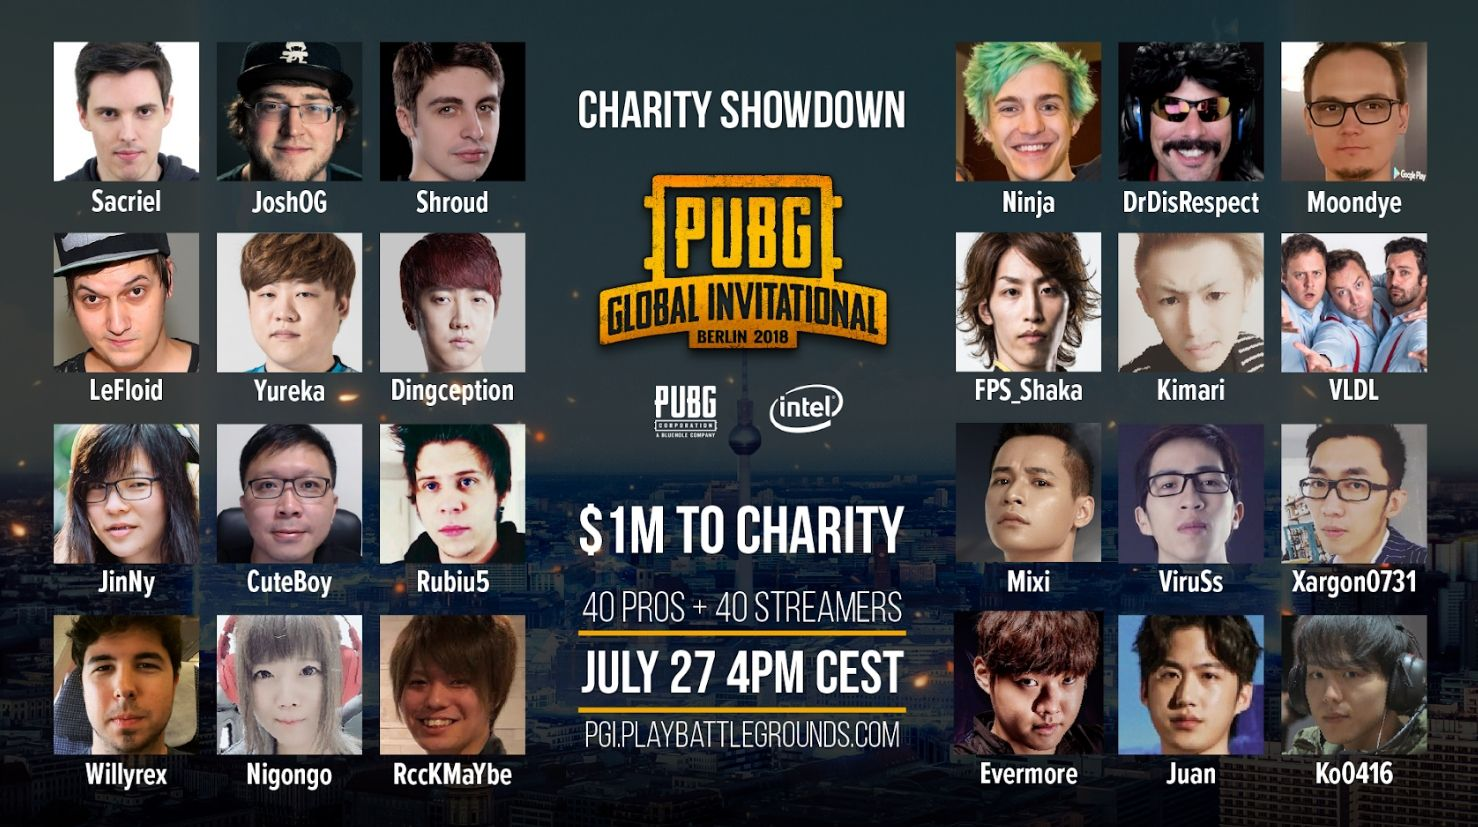 Ninja, Shroud, DrDisRespect, and other personalities are taking part